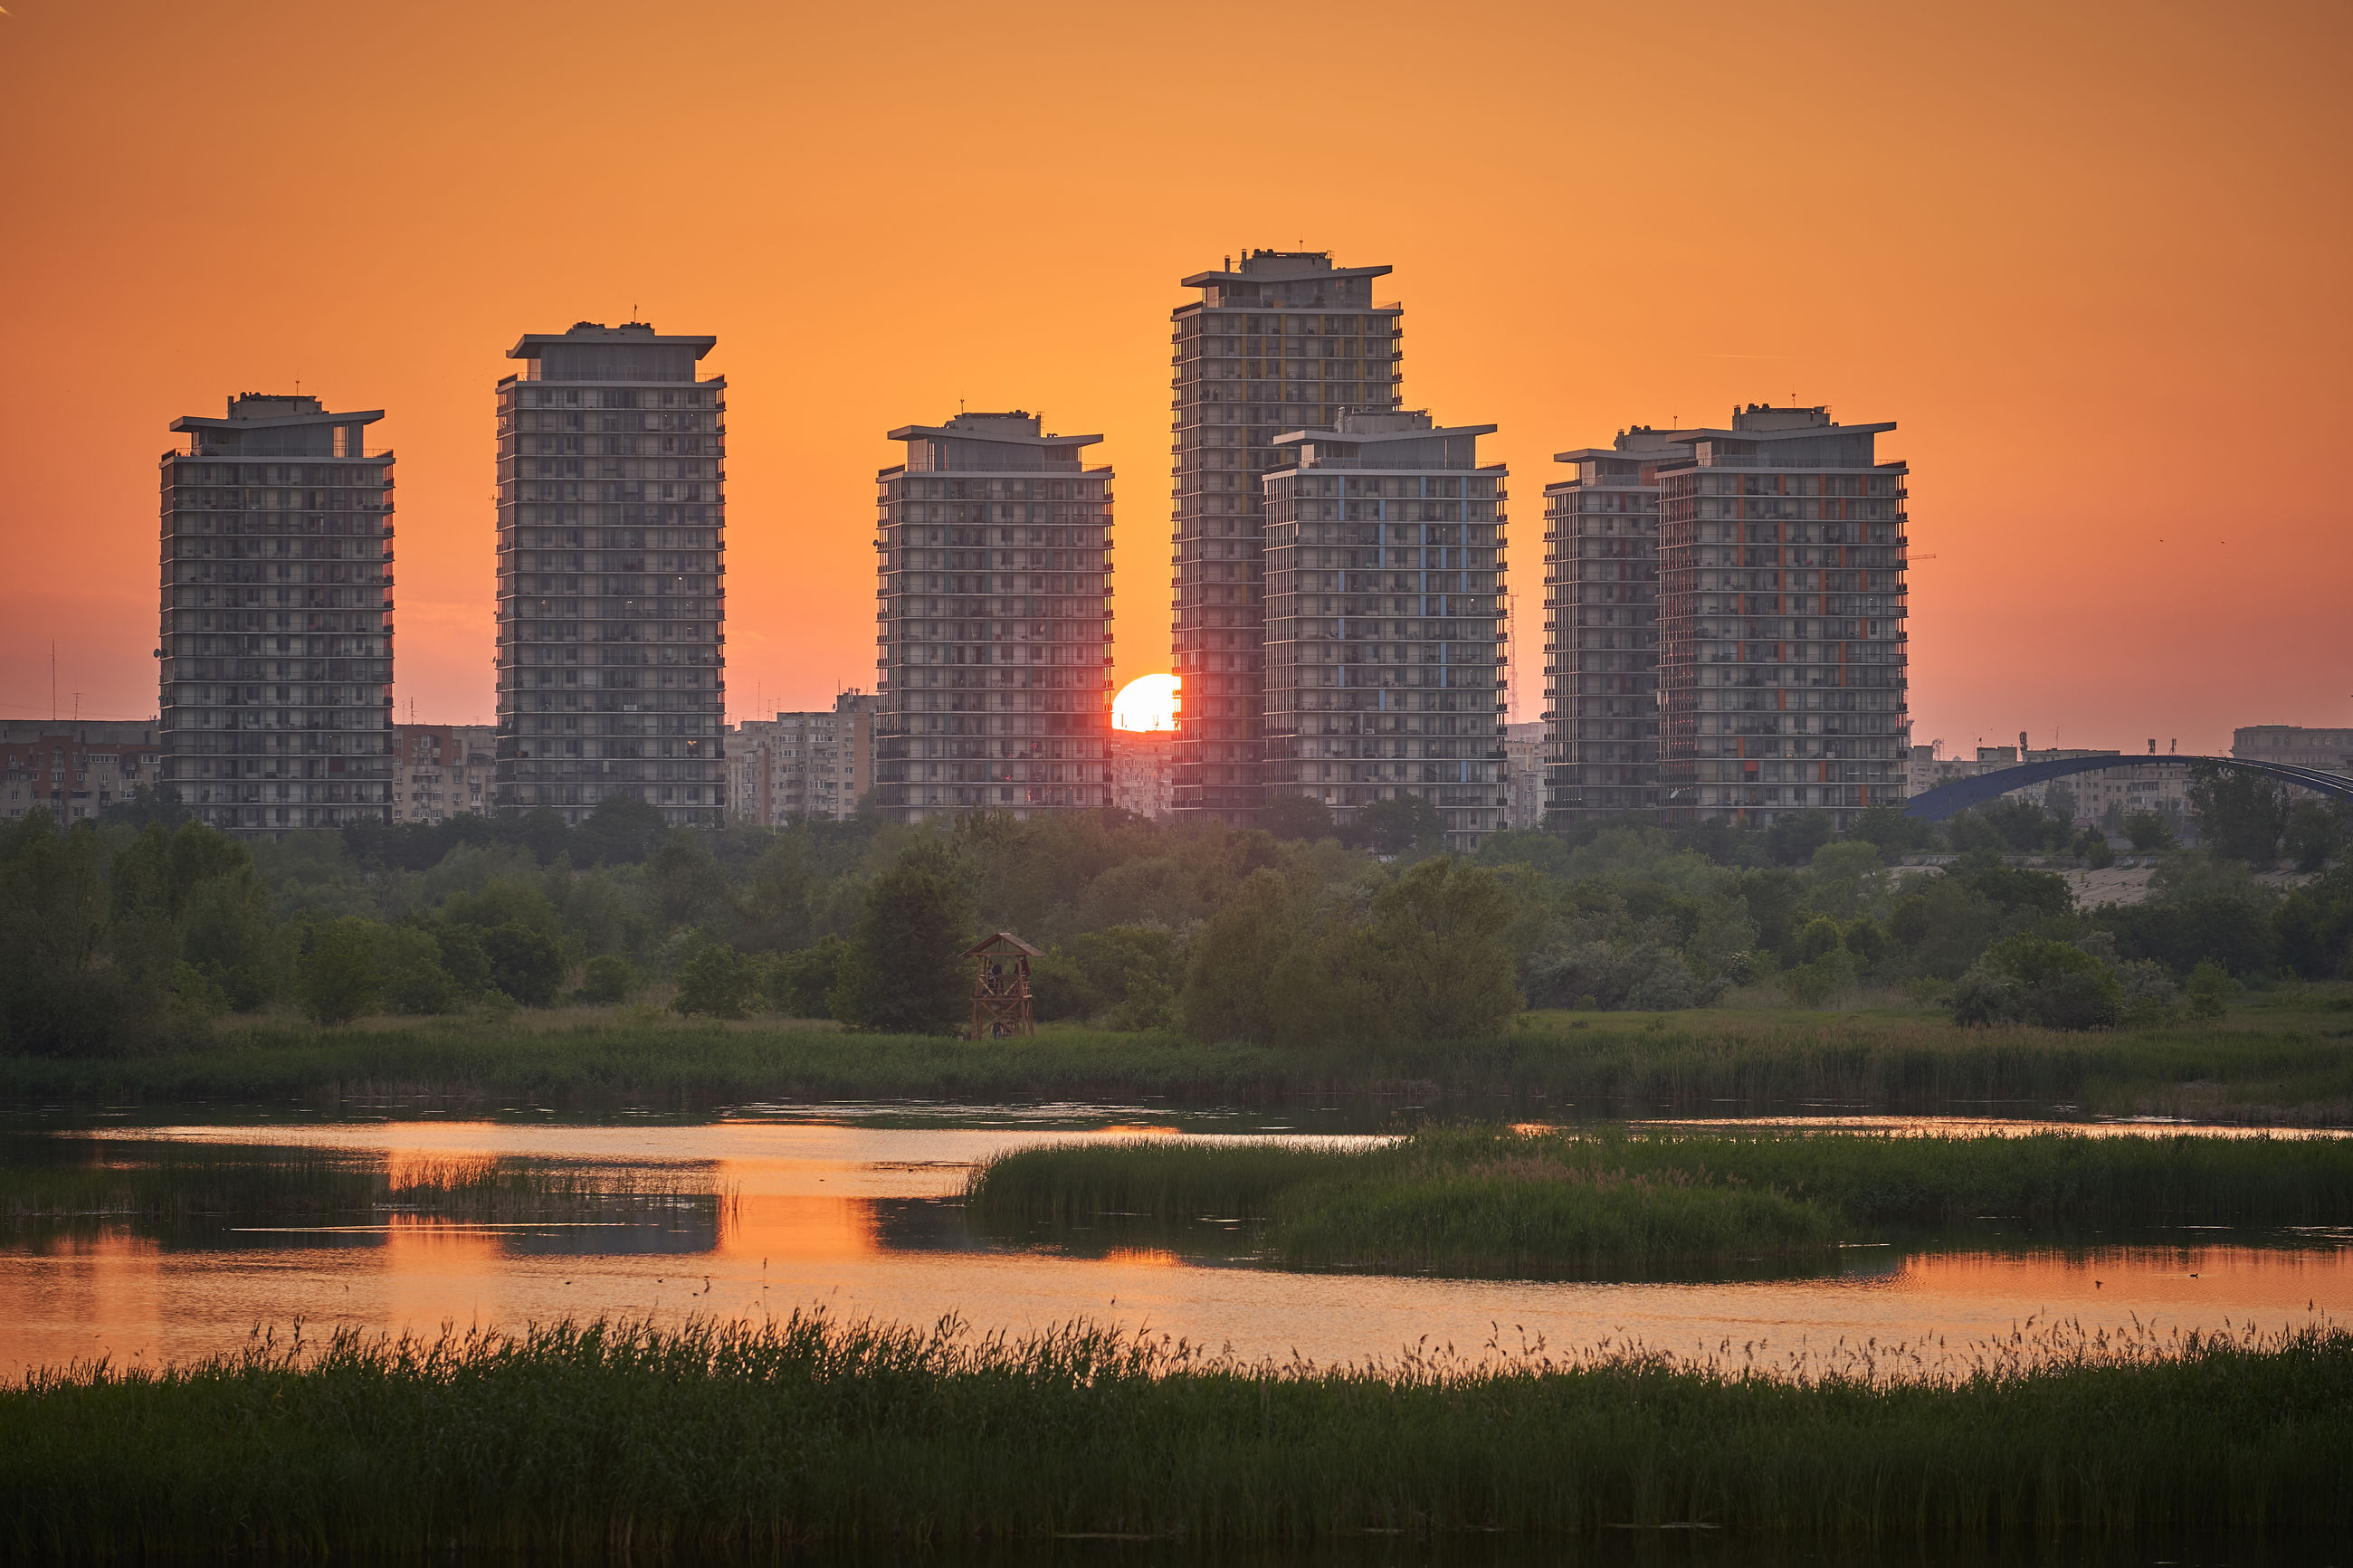 VIEW OF LAKE AND BUILDINGS AGAINST ORANGE SKY